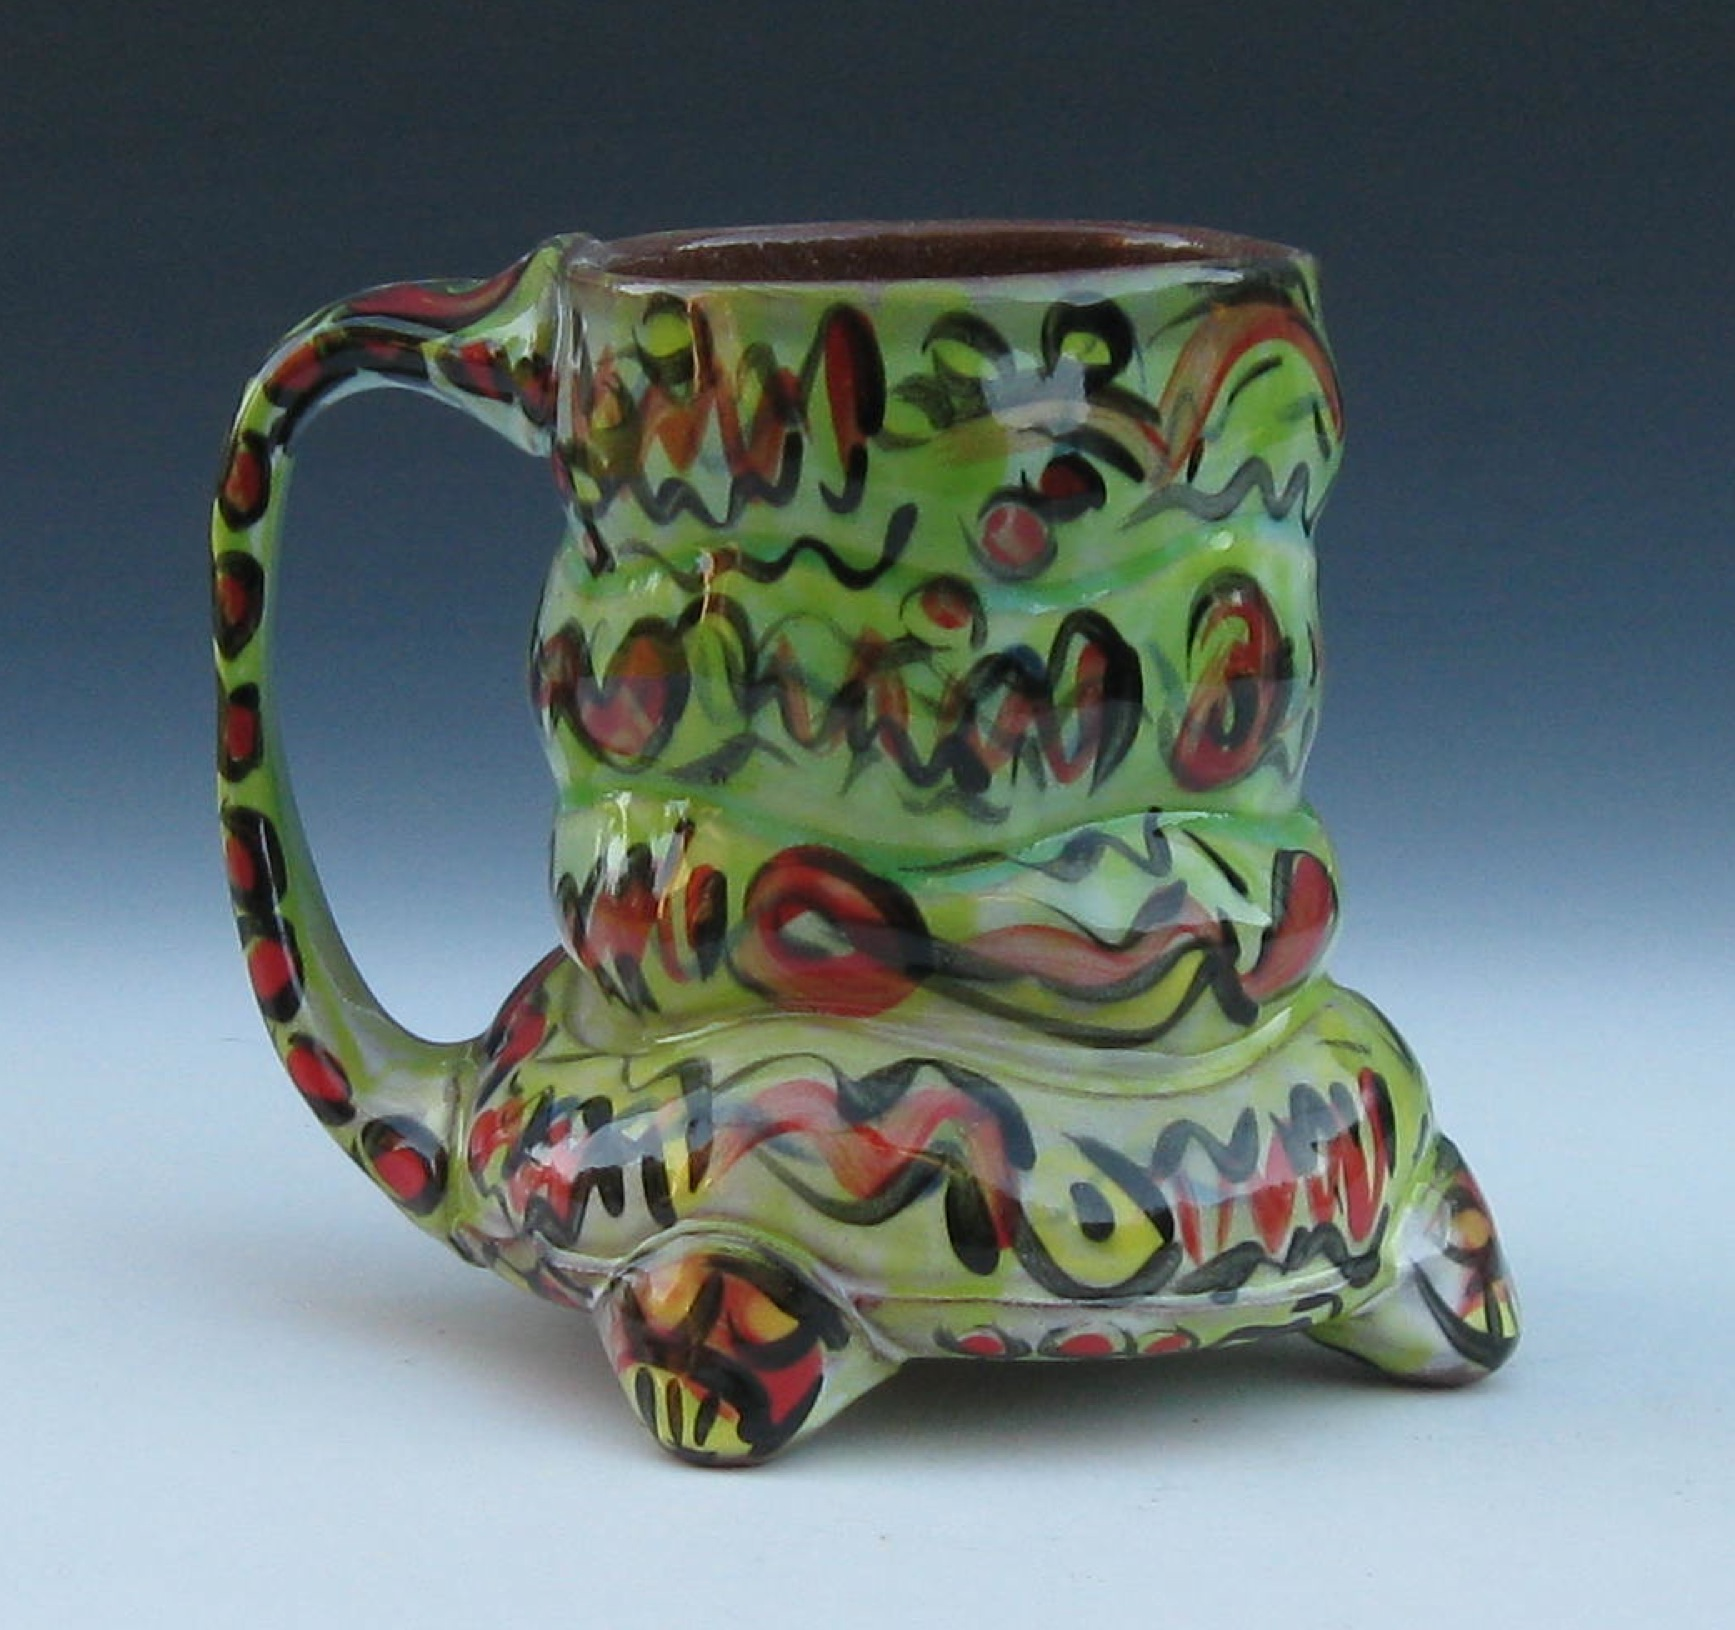 """Bulgy Graffiti Mug"" by Nathan Bray"